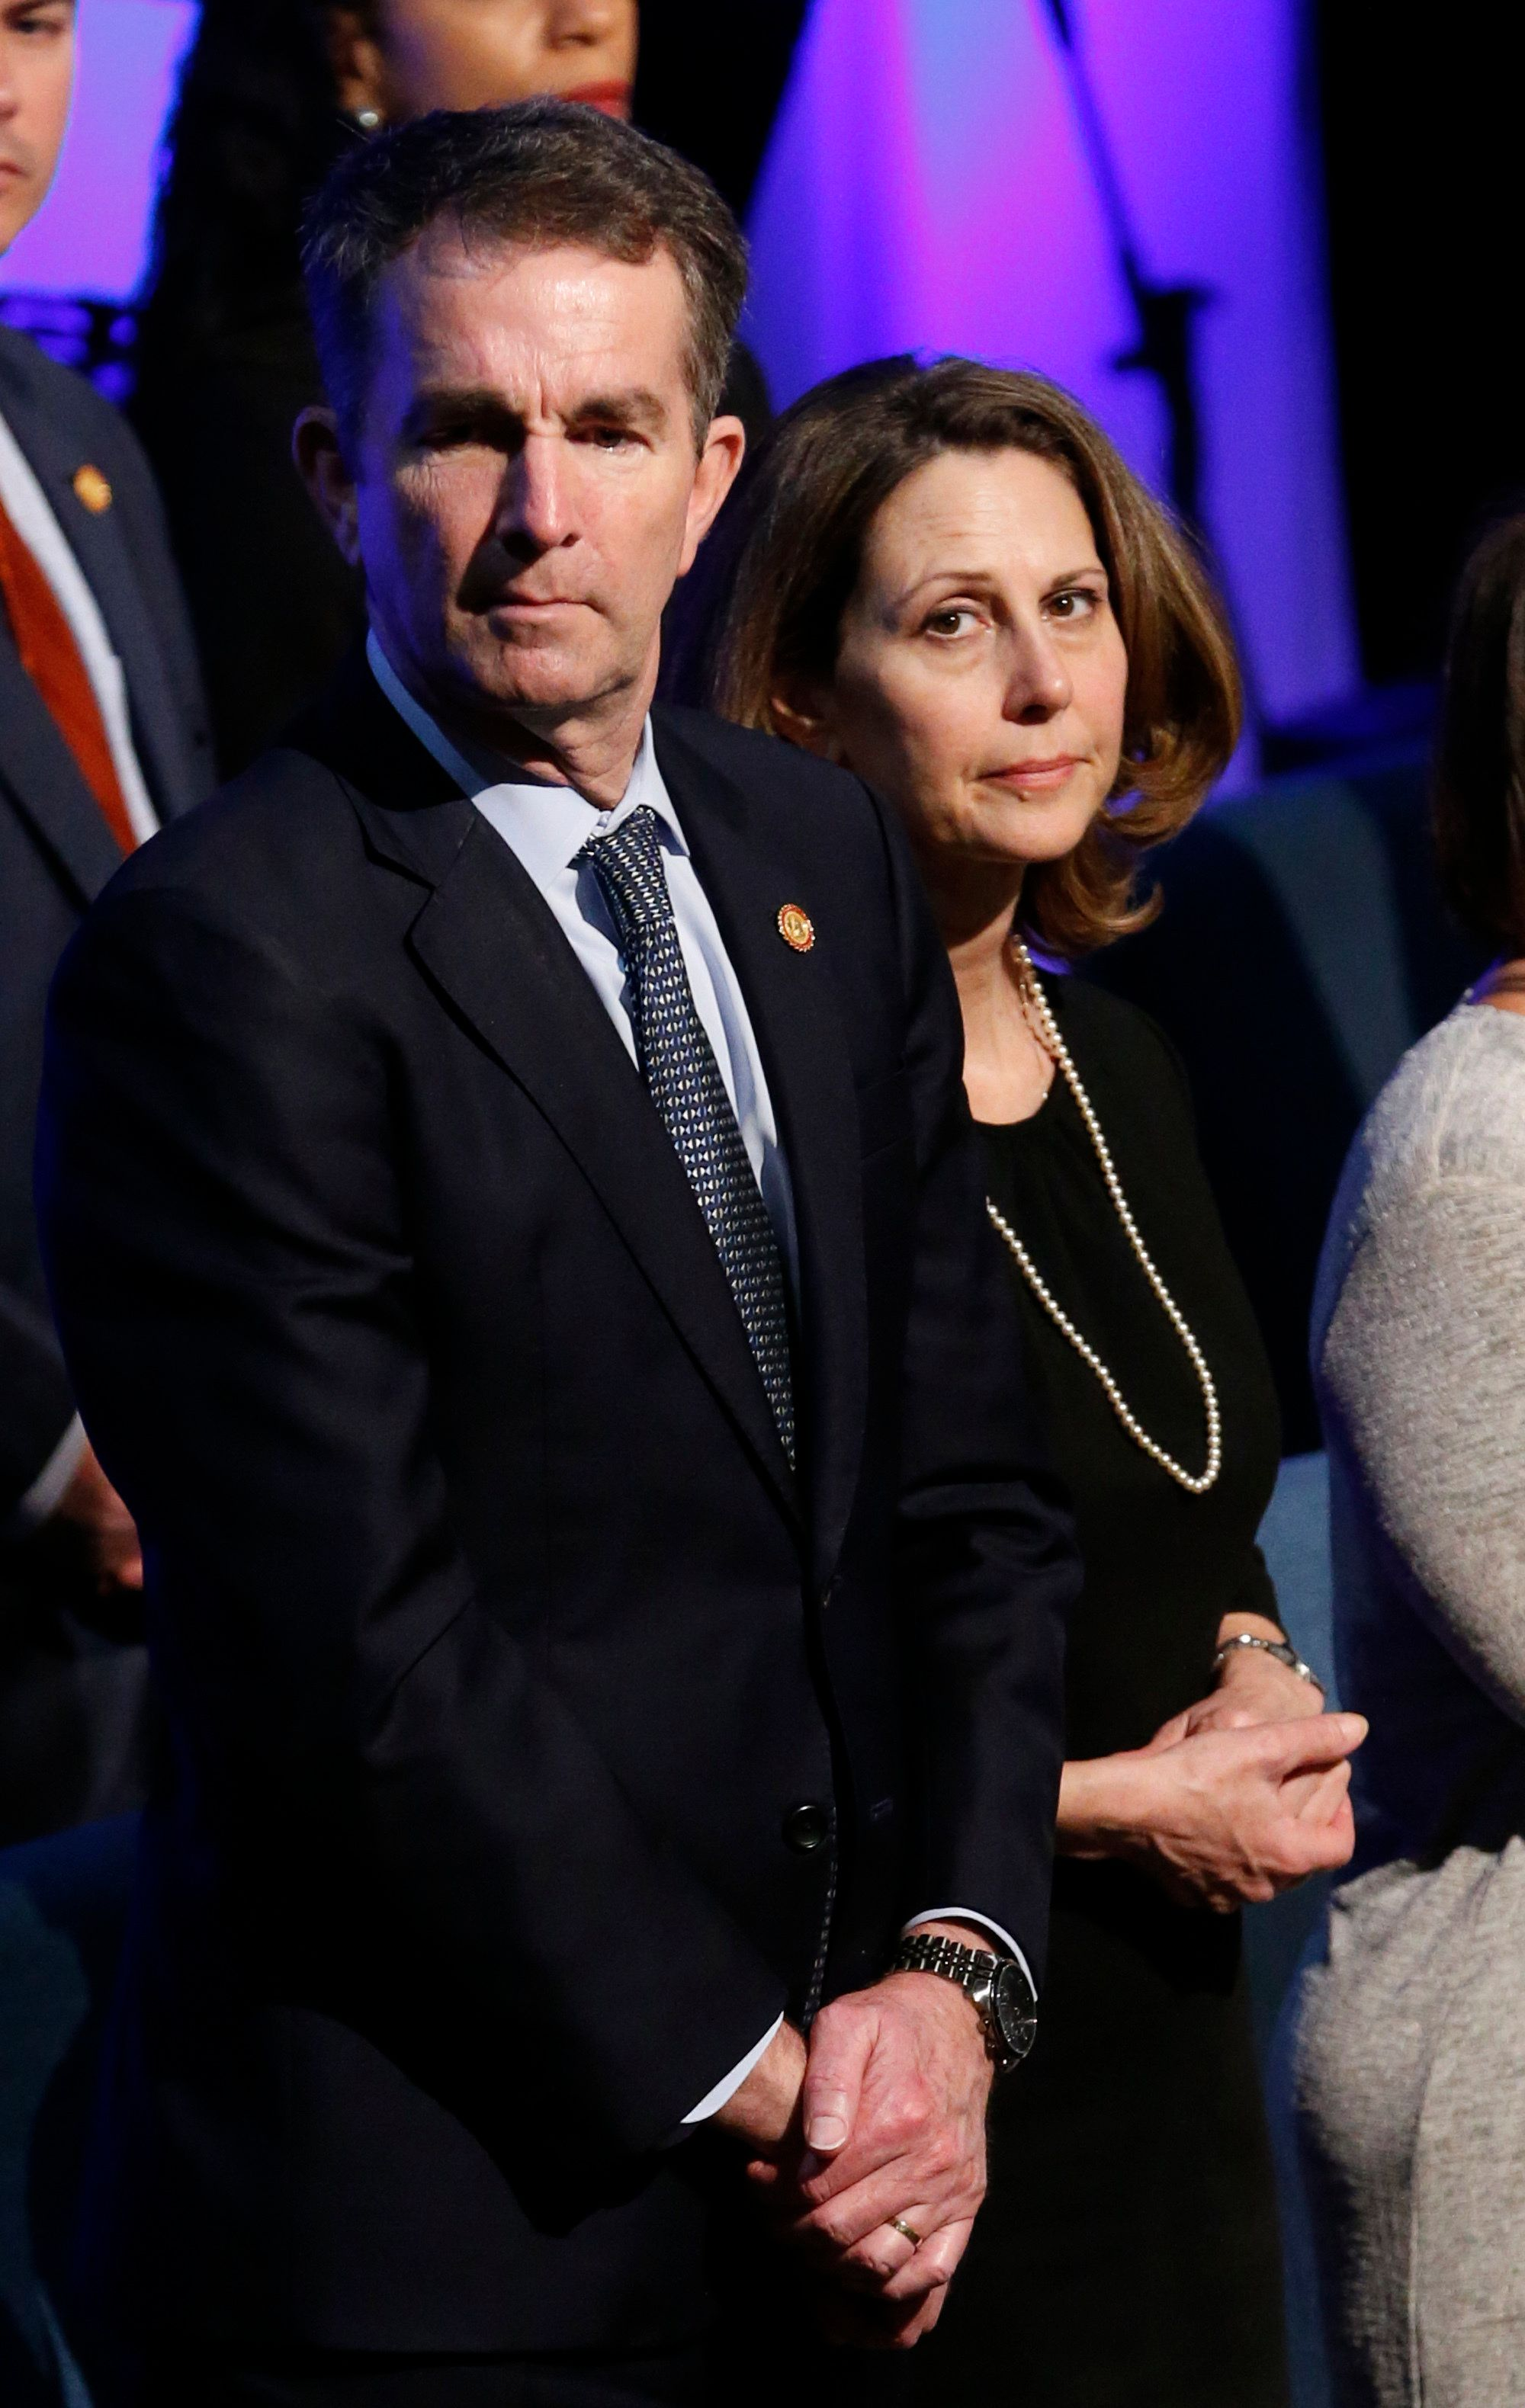 Virginia Gov. Ralph Northam, left, and his wife Pam, attend the funeral of Virginia State Trooper Lucas B. Dowell at the Chilhowie Christian Church in Chilhowie, Va., Saturday, Feb. 9, 2019. Dowell was killed in the line of duty earlier in the week. (AP Photo/Steve Helber, Pool)